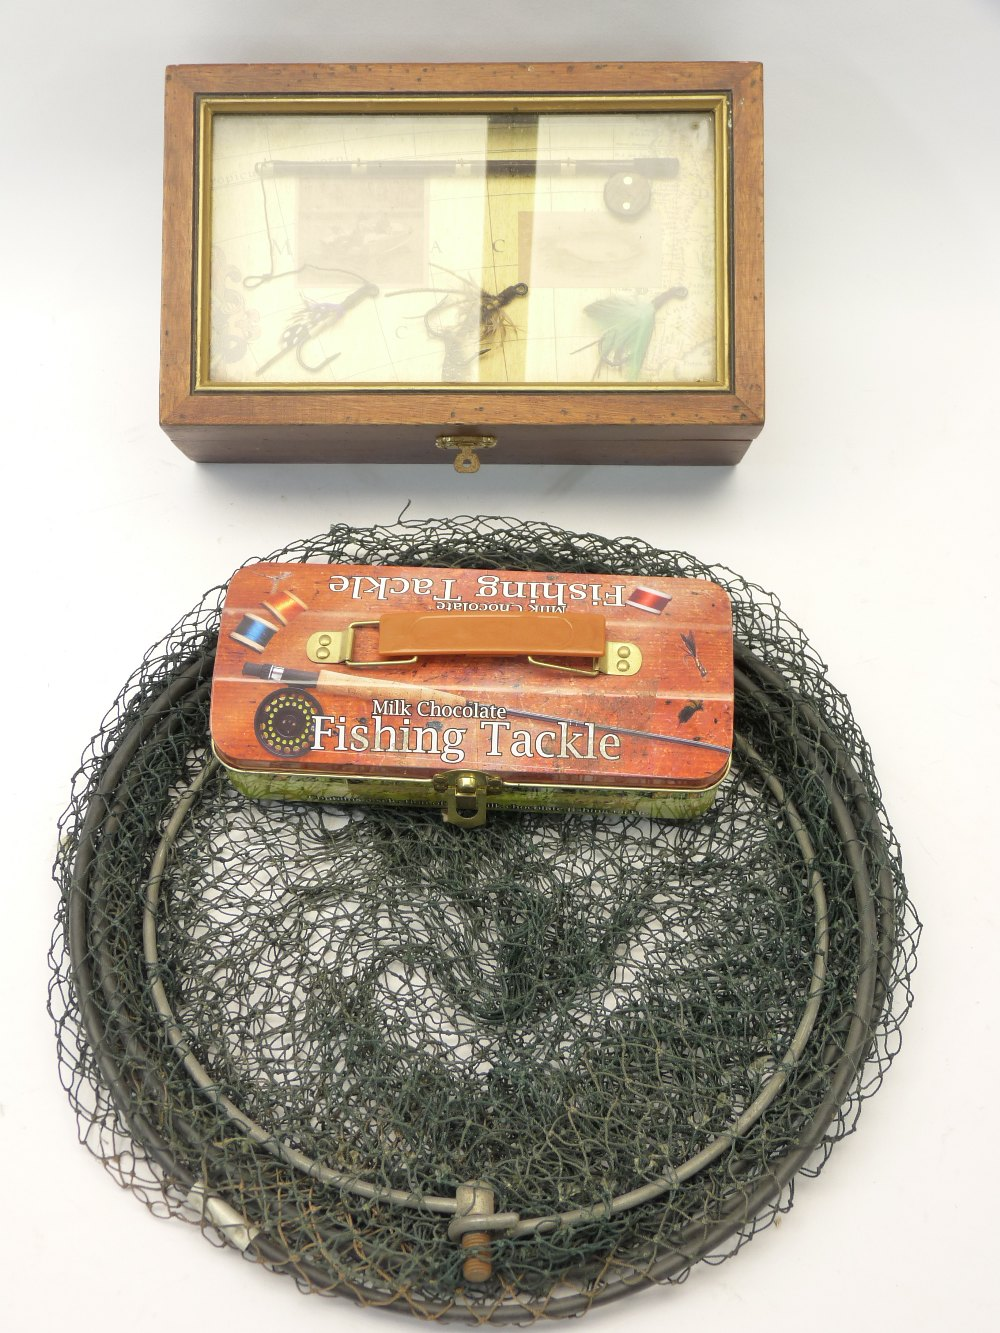 FISHING INTEREST - string keep net, empty milk chocolate fishing tackle tin and a lidded box with